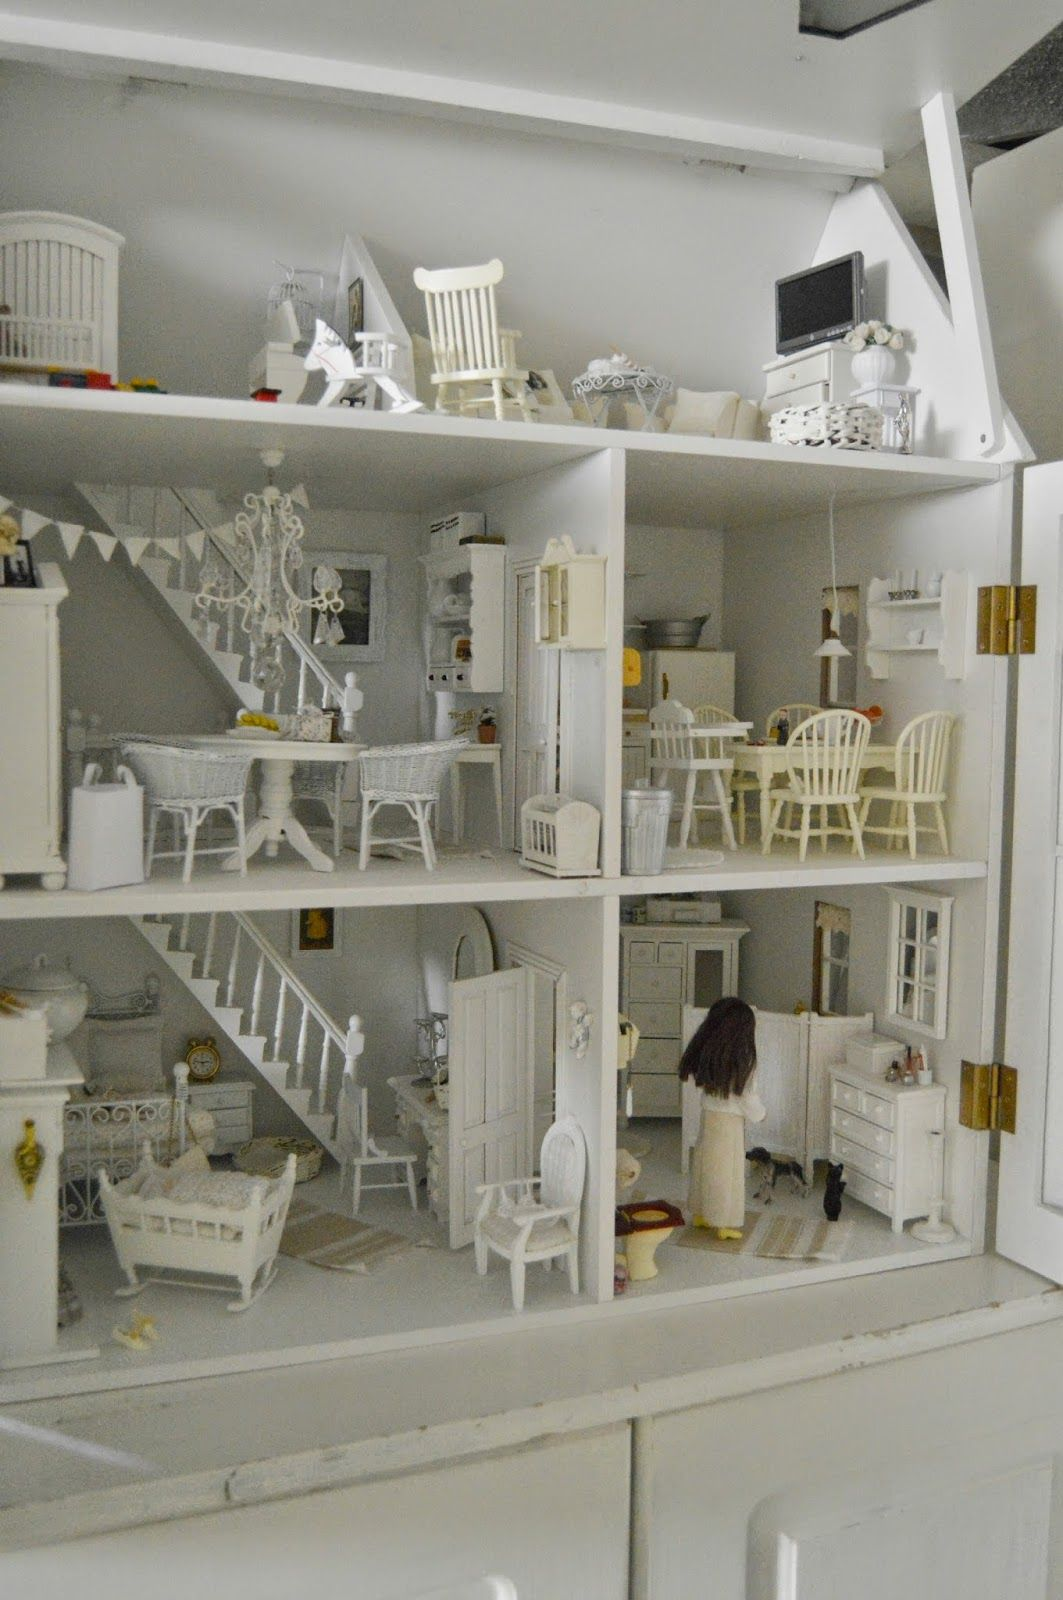 A lovely dolls house - with furniture and the doll!